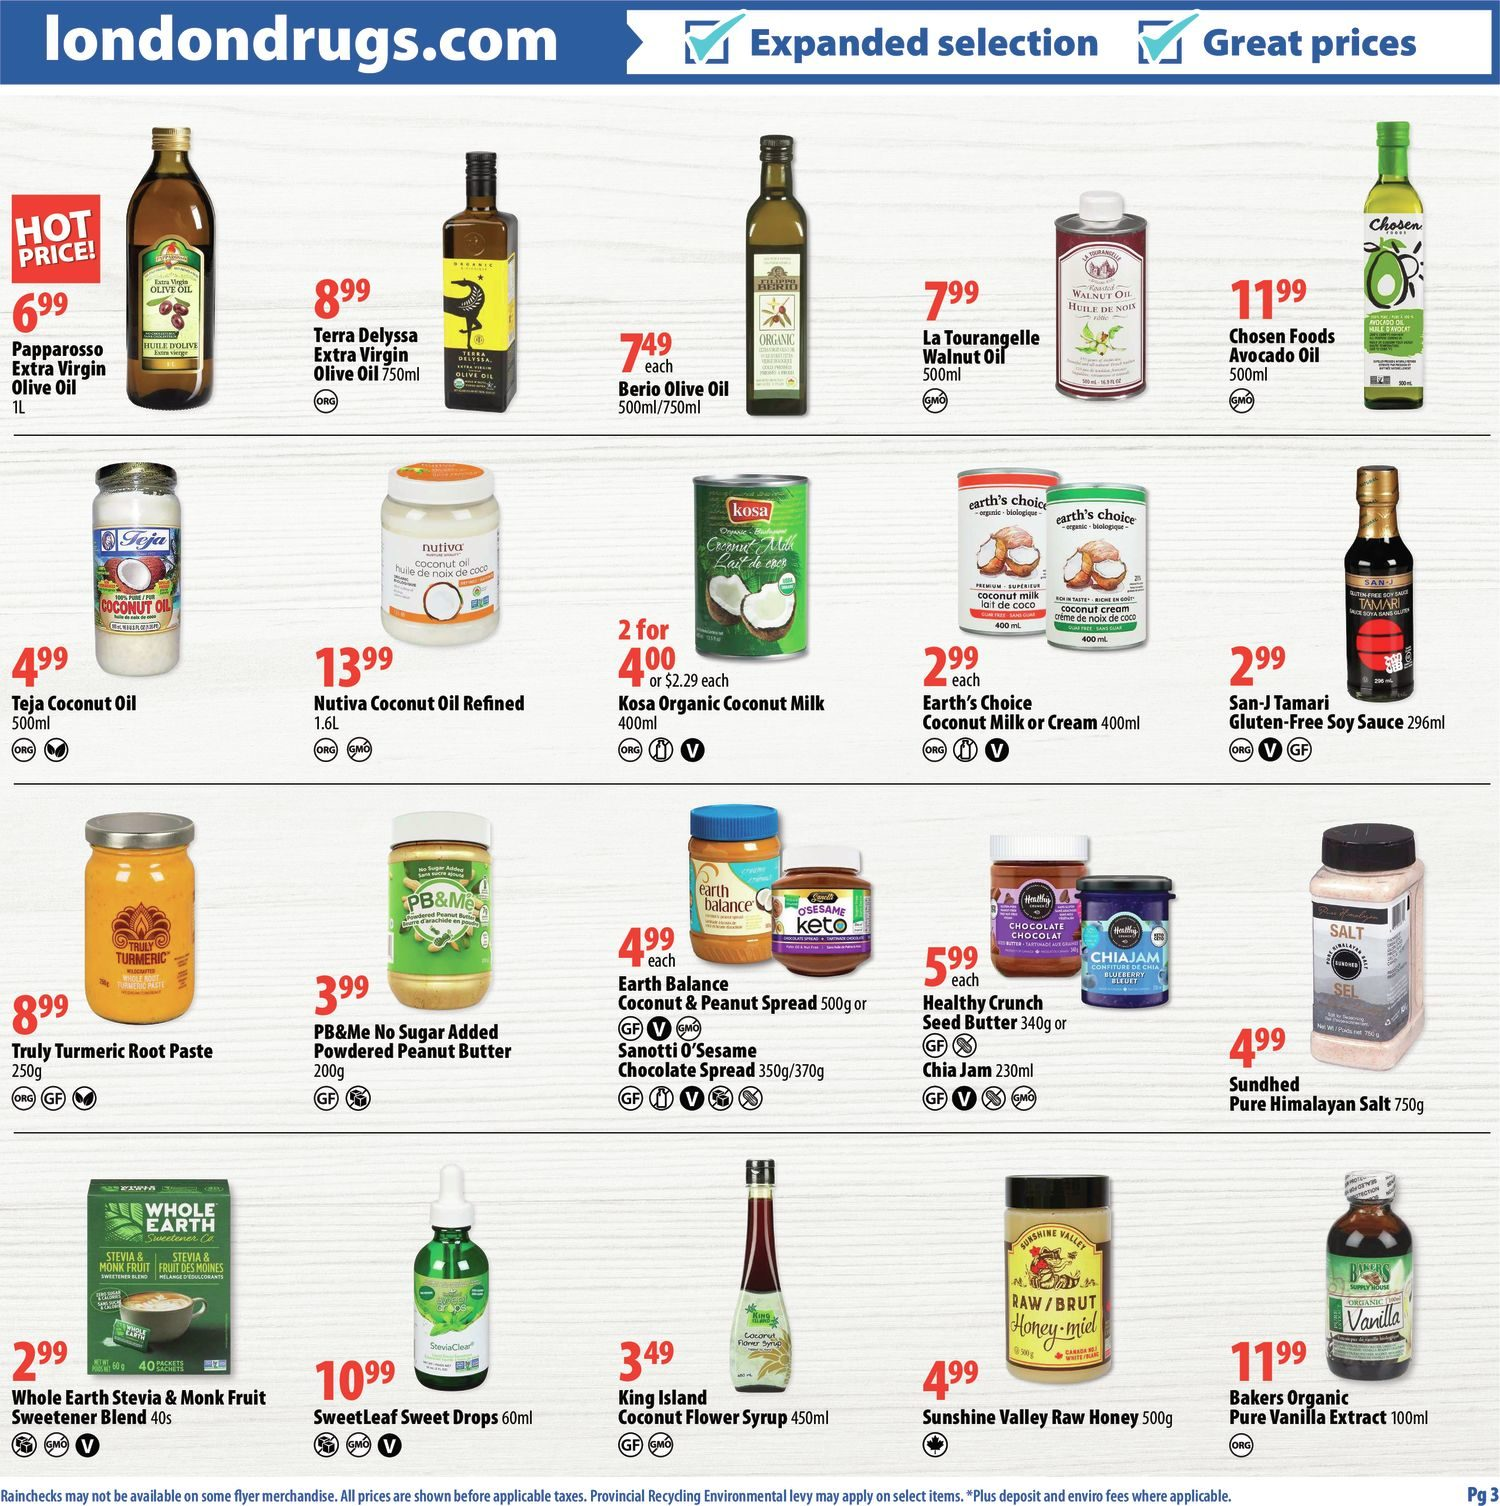 London Drugs - Mindful Choices - Choices To Support Your Lifestyle - Page 3